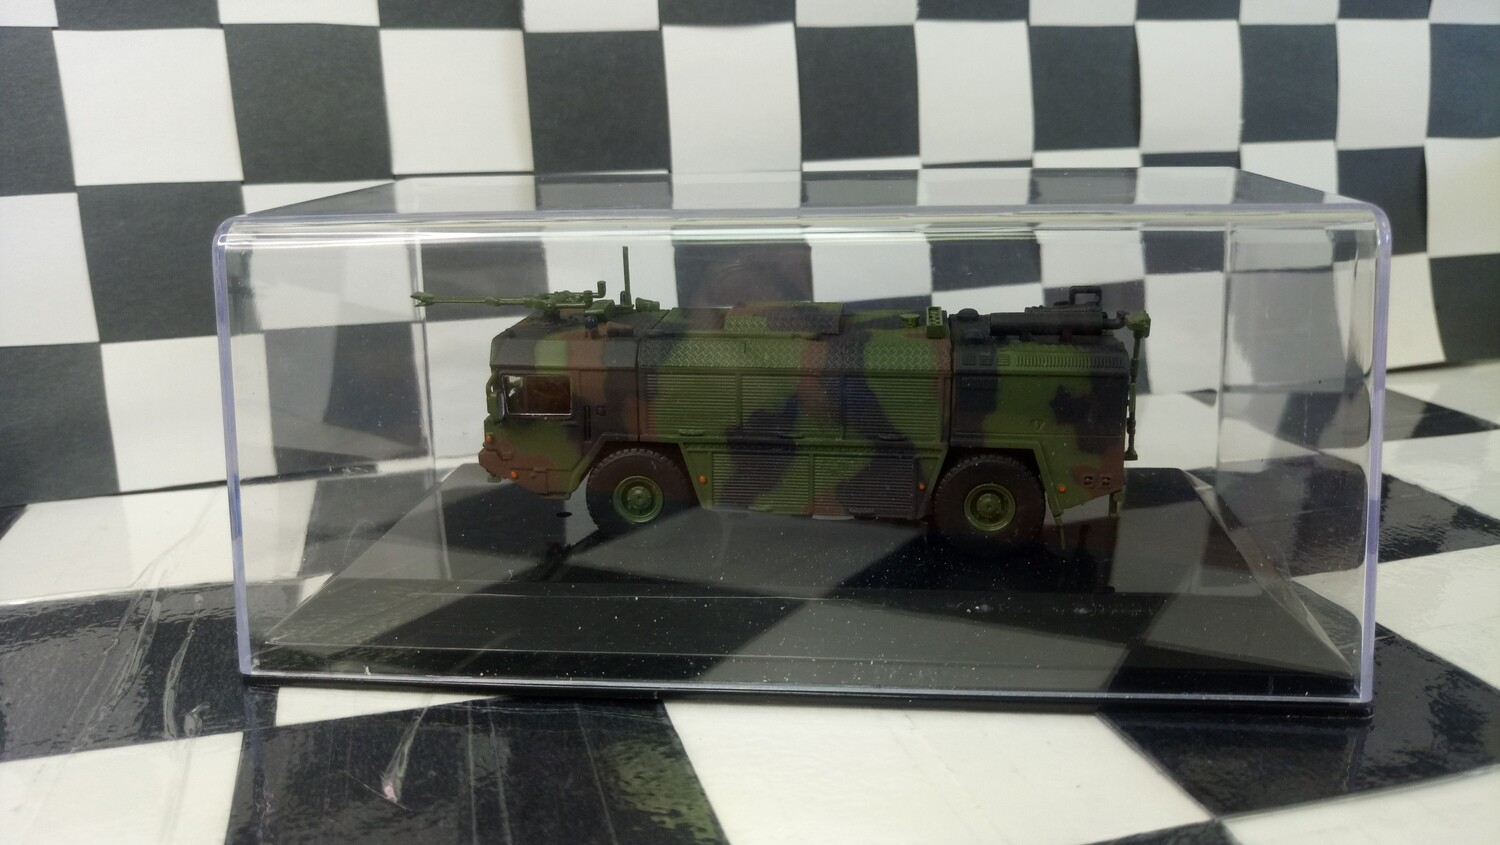 1:87 Asrenal-M  FAUN LF 16.30/45 TroLF 3000I. (Camouflage version)